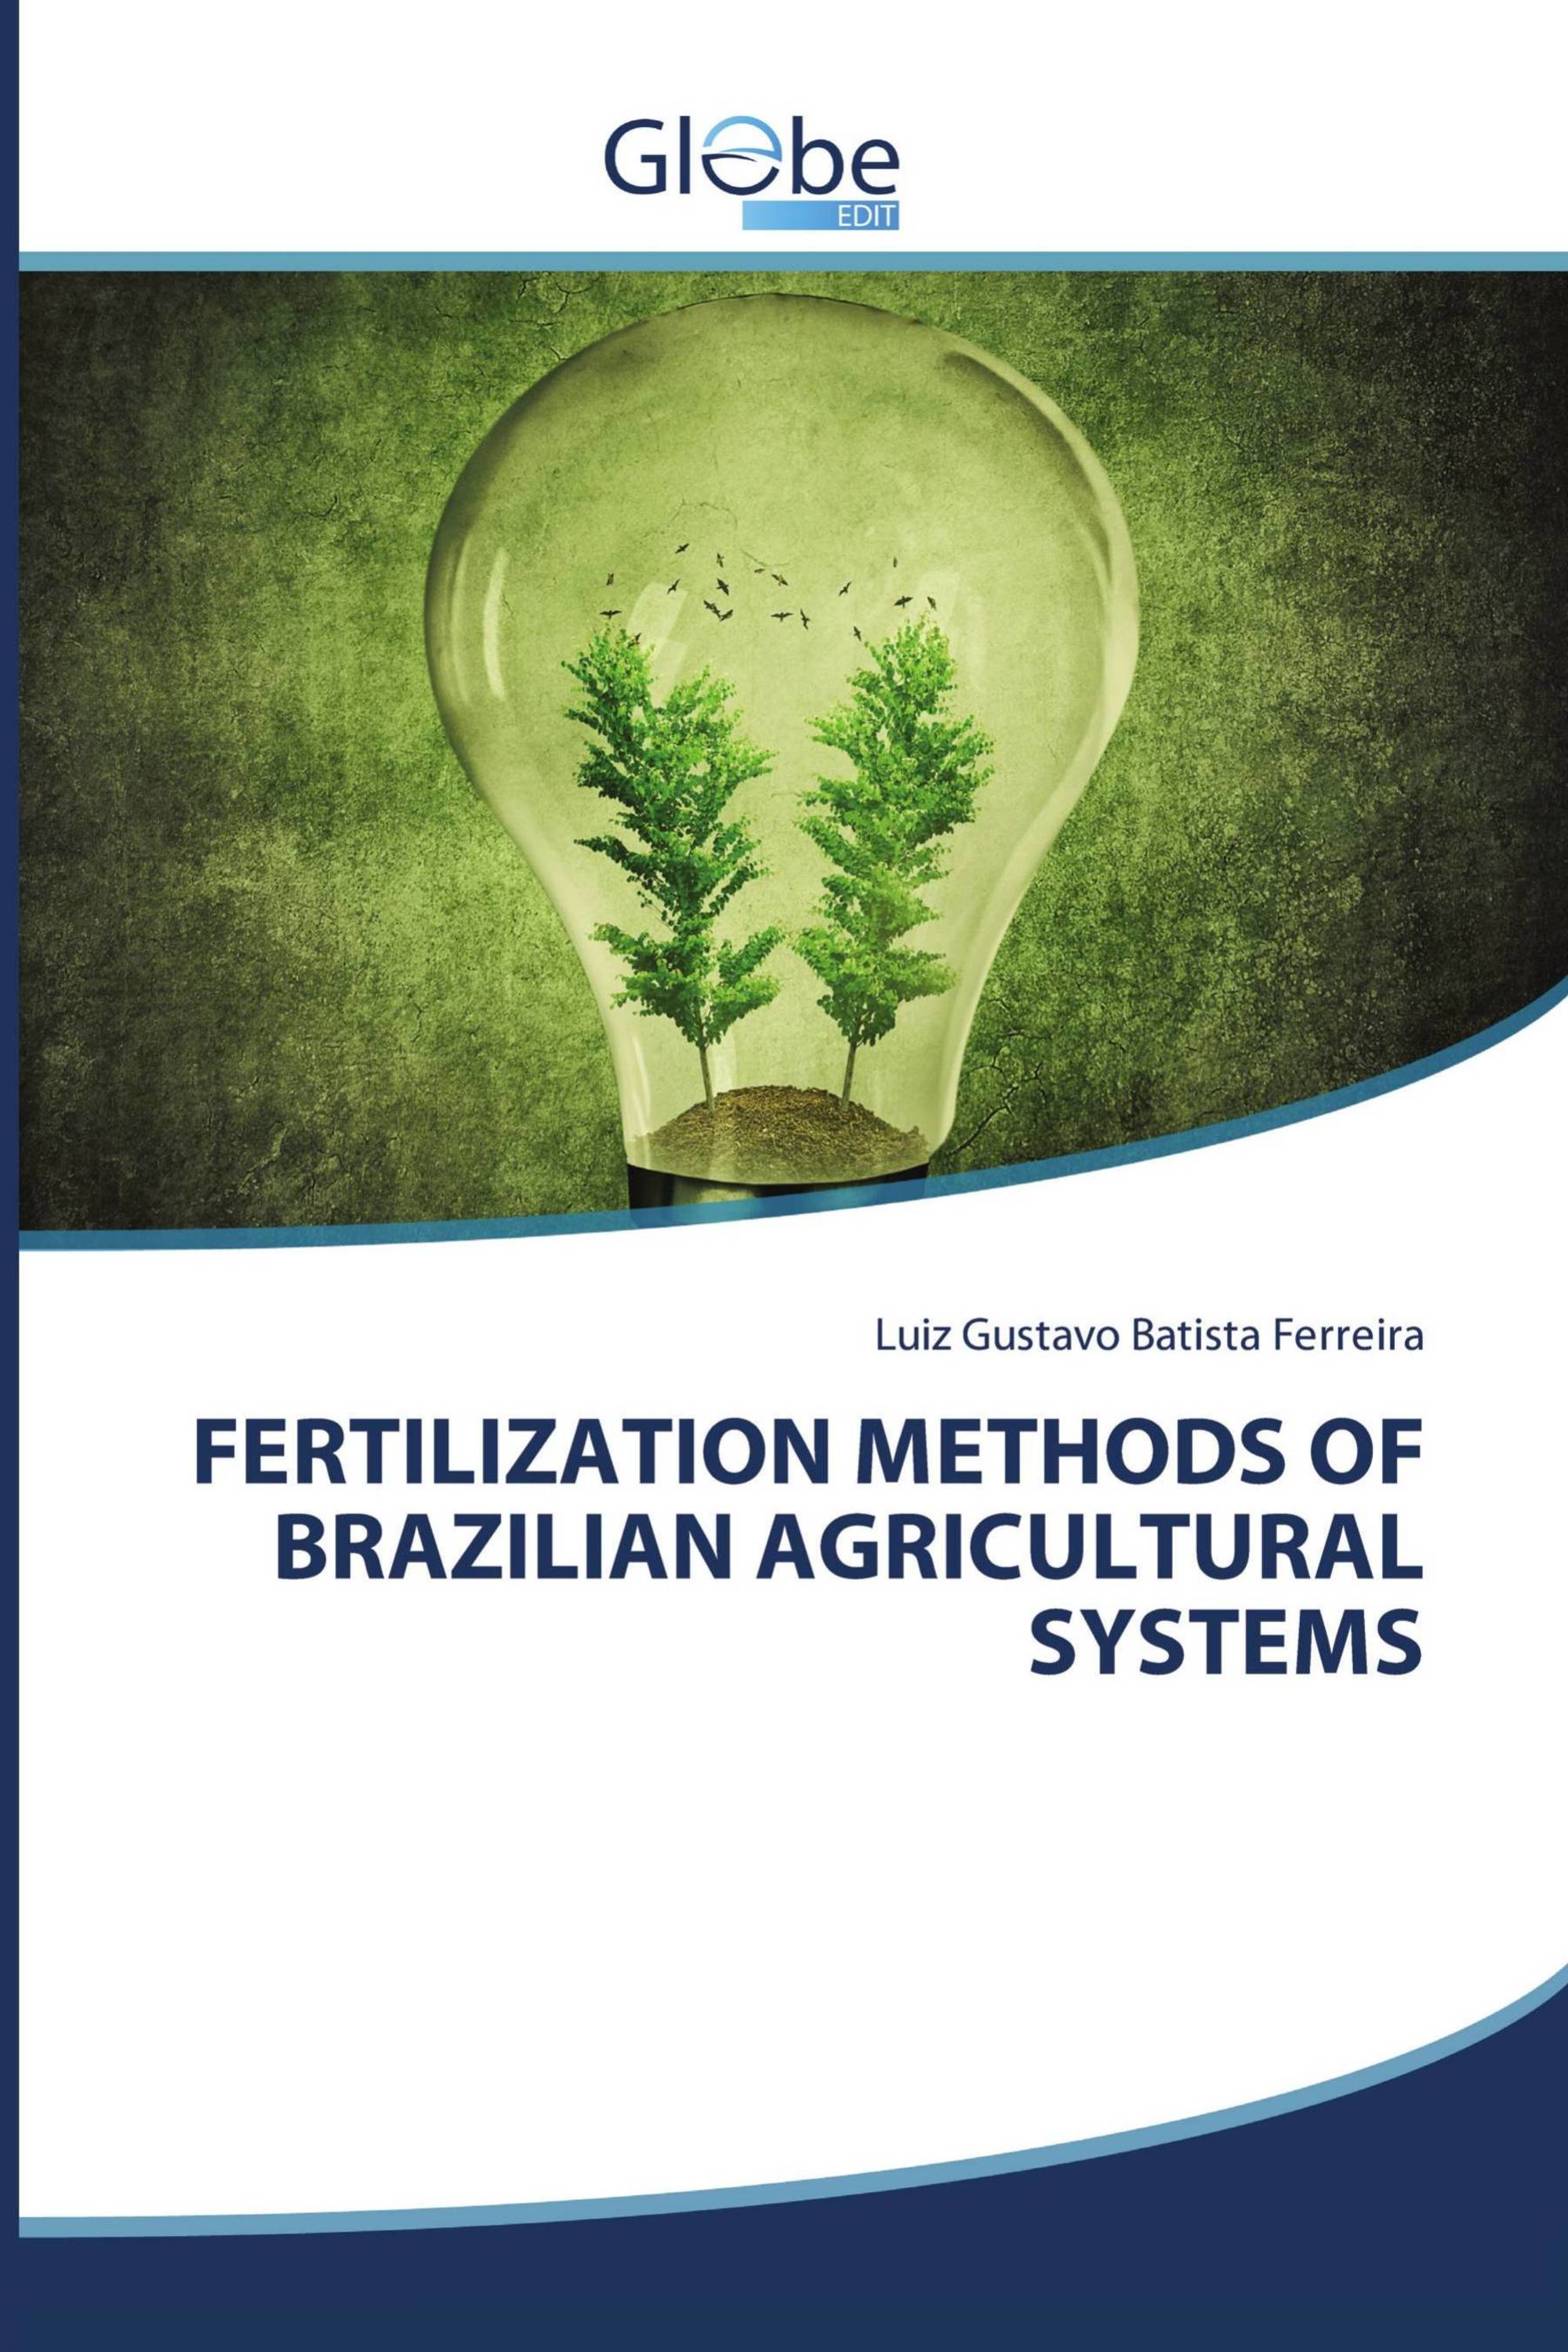 FERTILIZATION METHODS OF BRAZILIAN AGRICULTURAL SYSTEMS